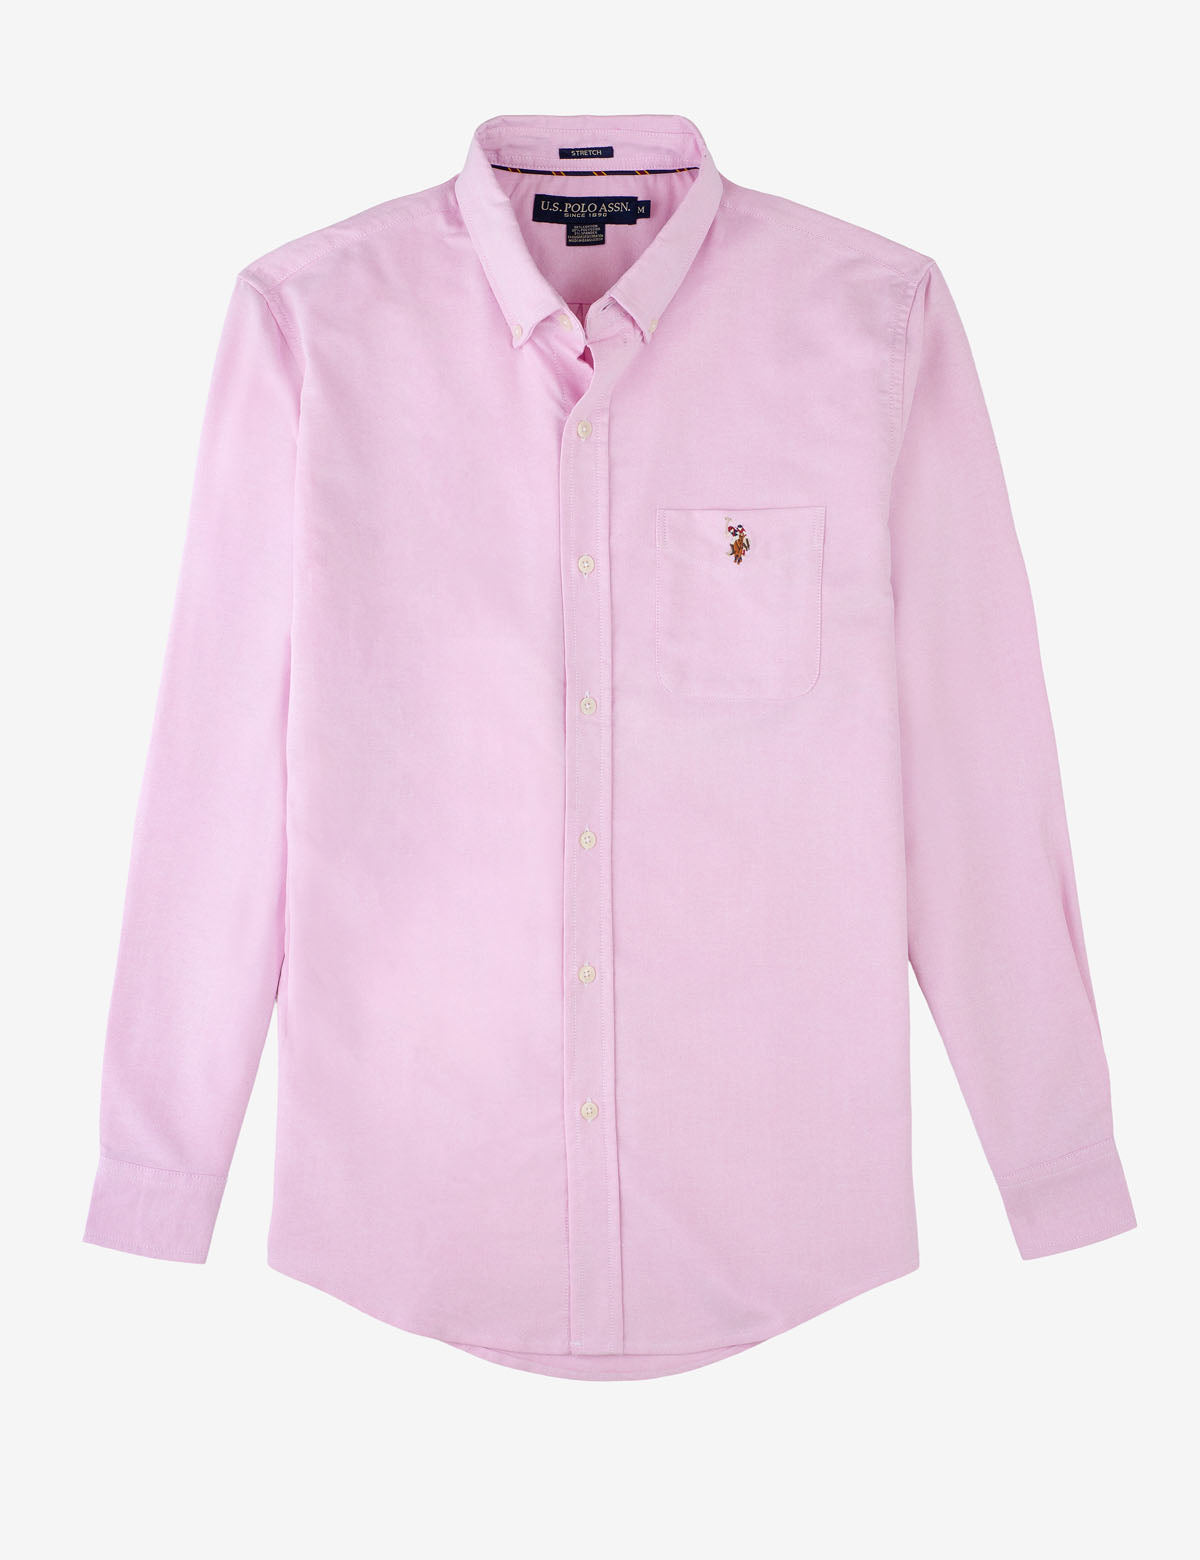 MULTI POLO OXFORD SHIRT - U.S. Polo Assn.